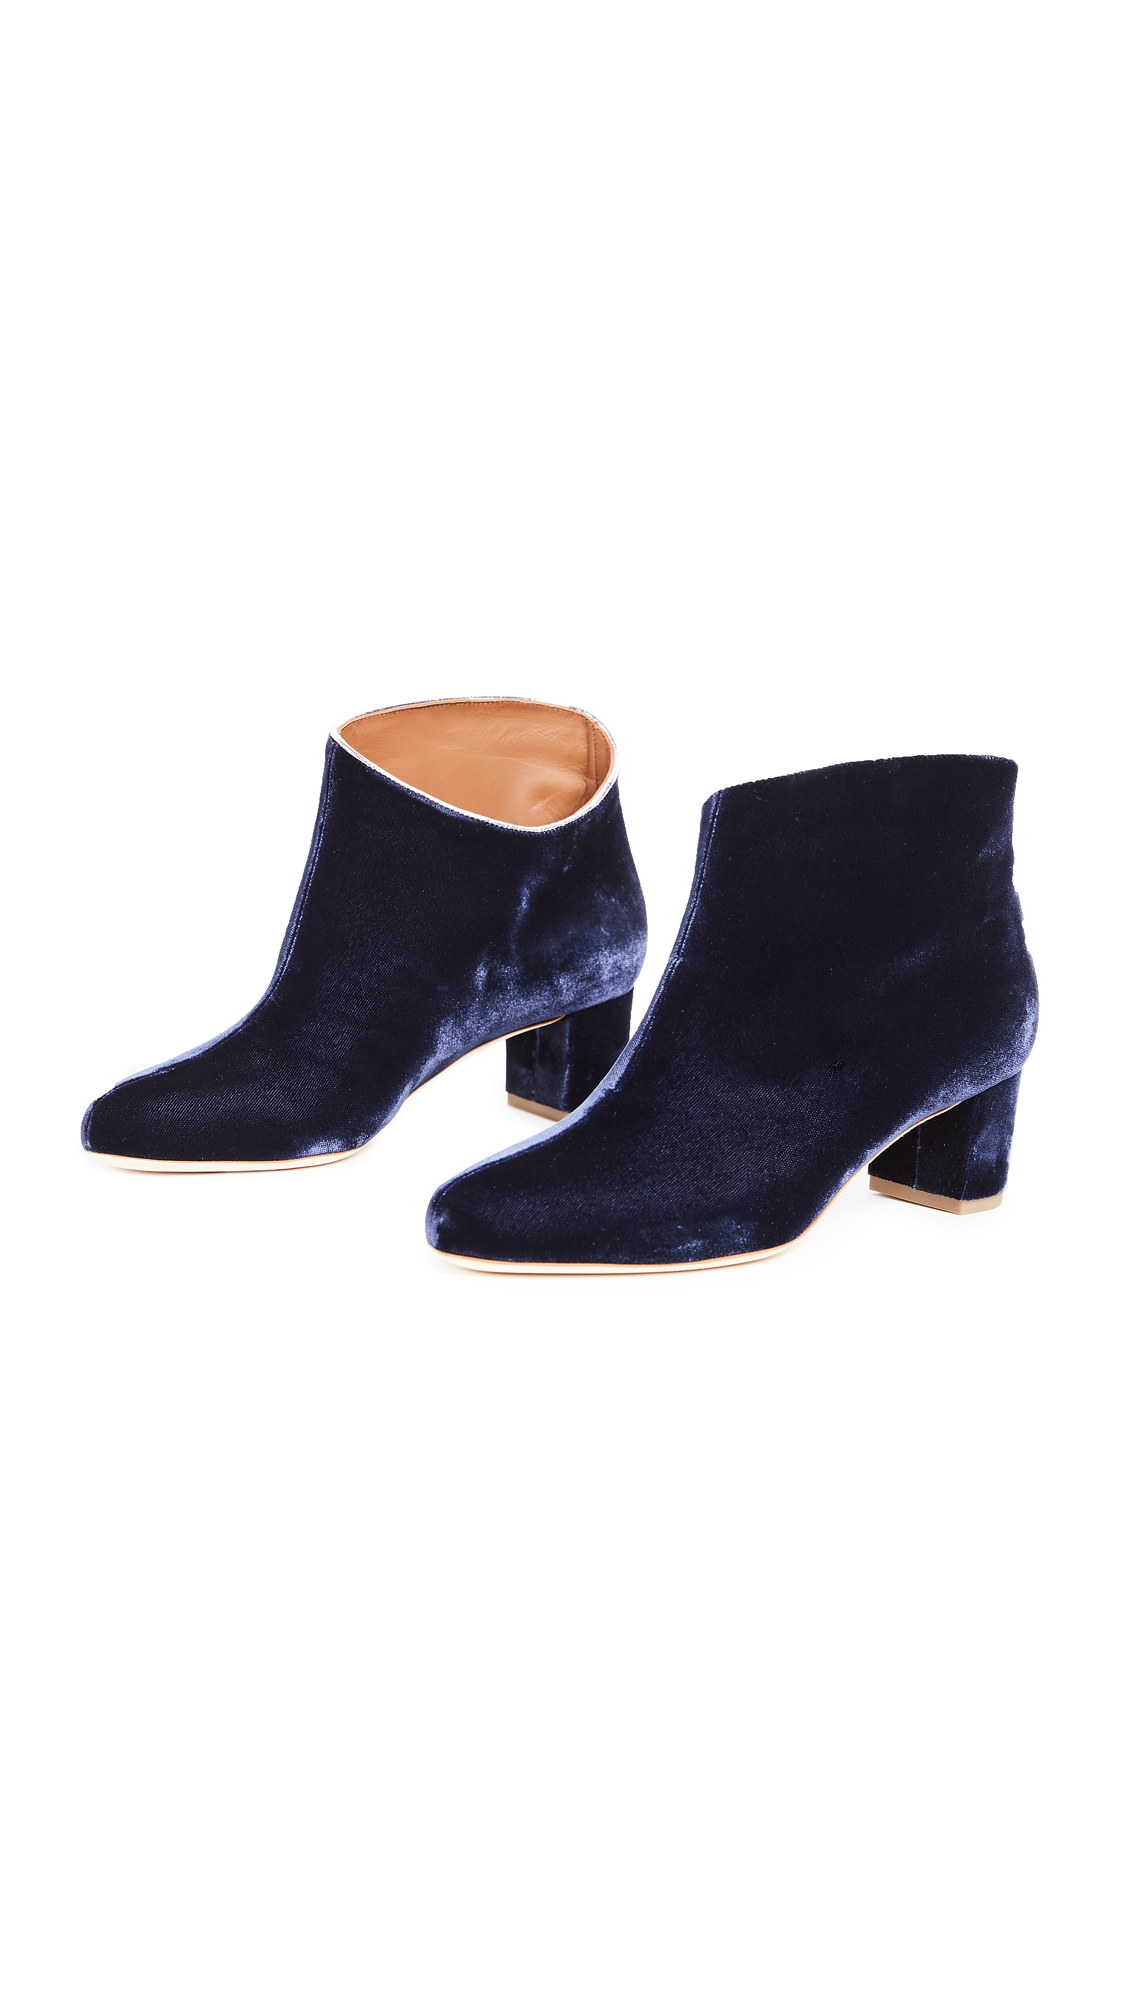 Malone Souliers Eula Mid Booties - Navy/Silver